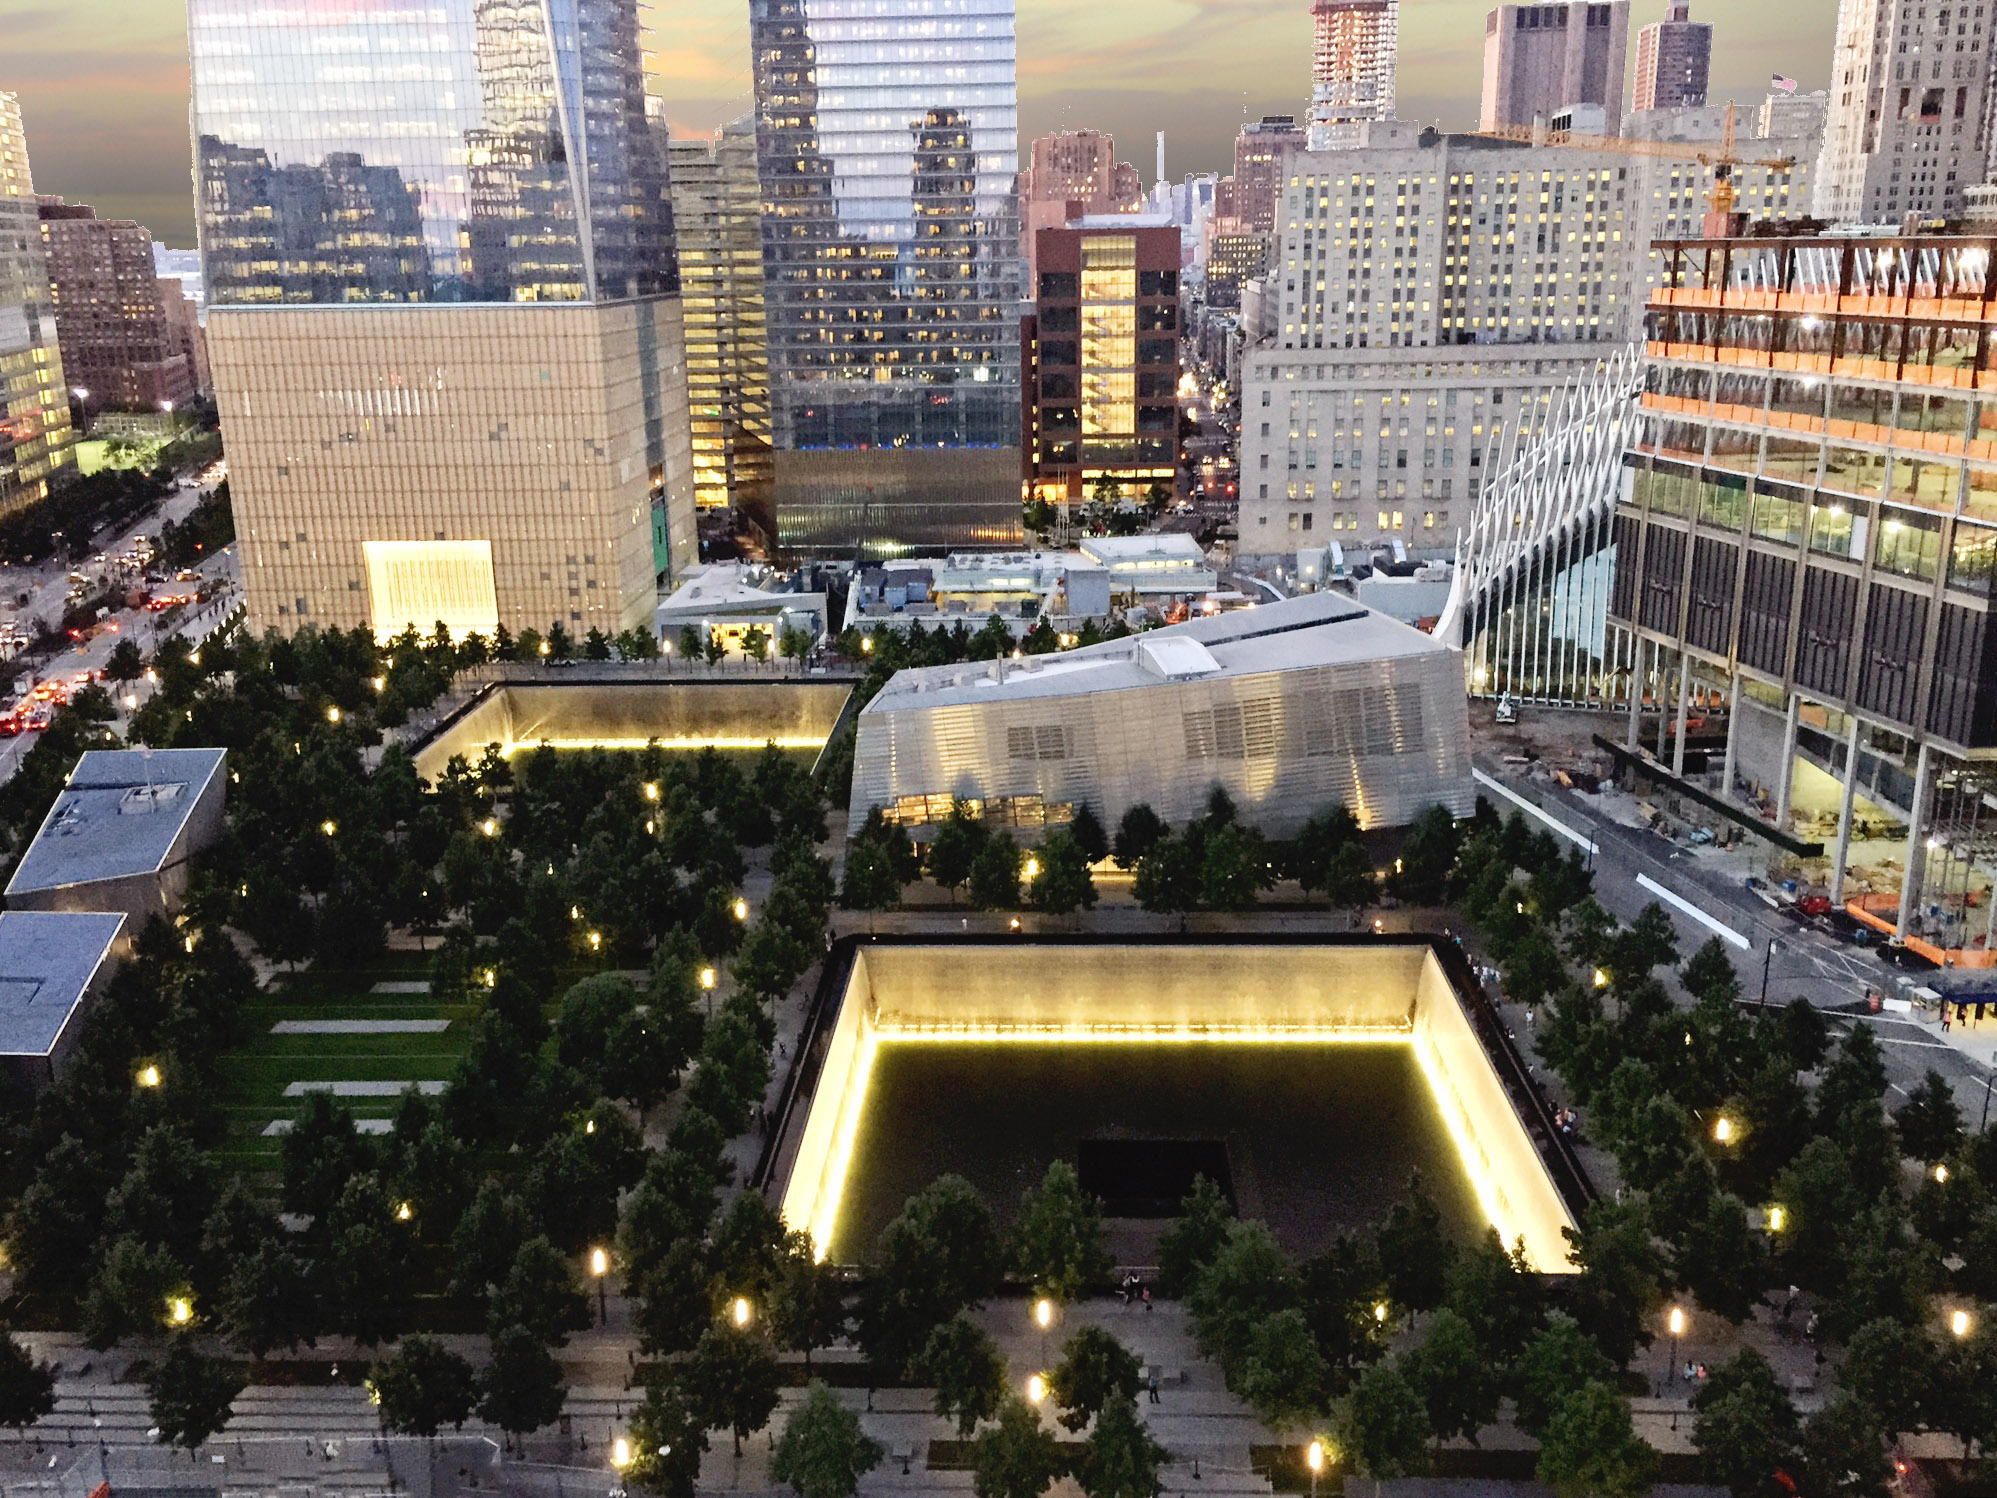 9/11 Memorial & Museum Lit Up with Gold Beams of Light